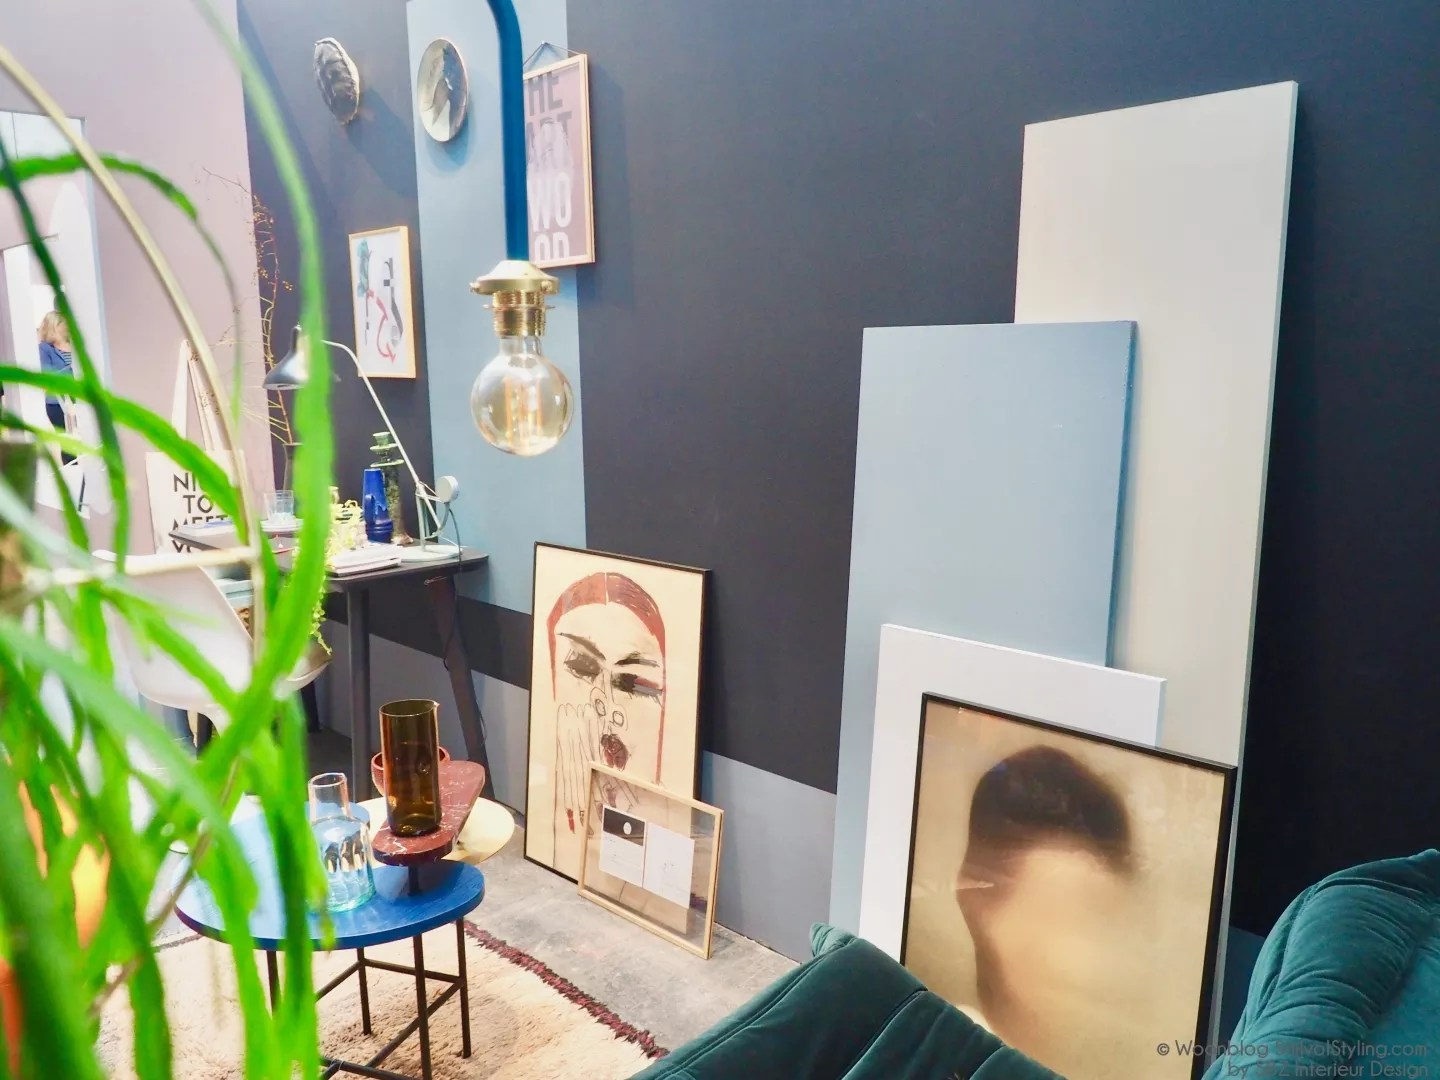 Kleur 2019 Interieur Woontrends 2019 De Interieur Trends 2019 Sneak Preview